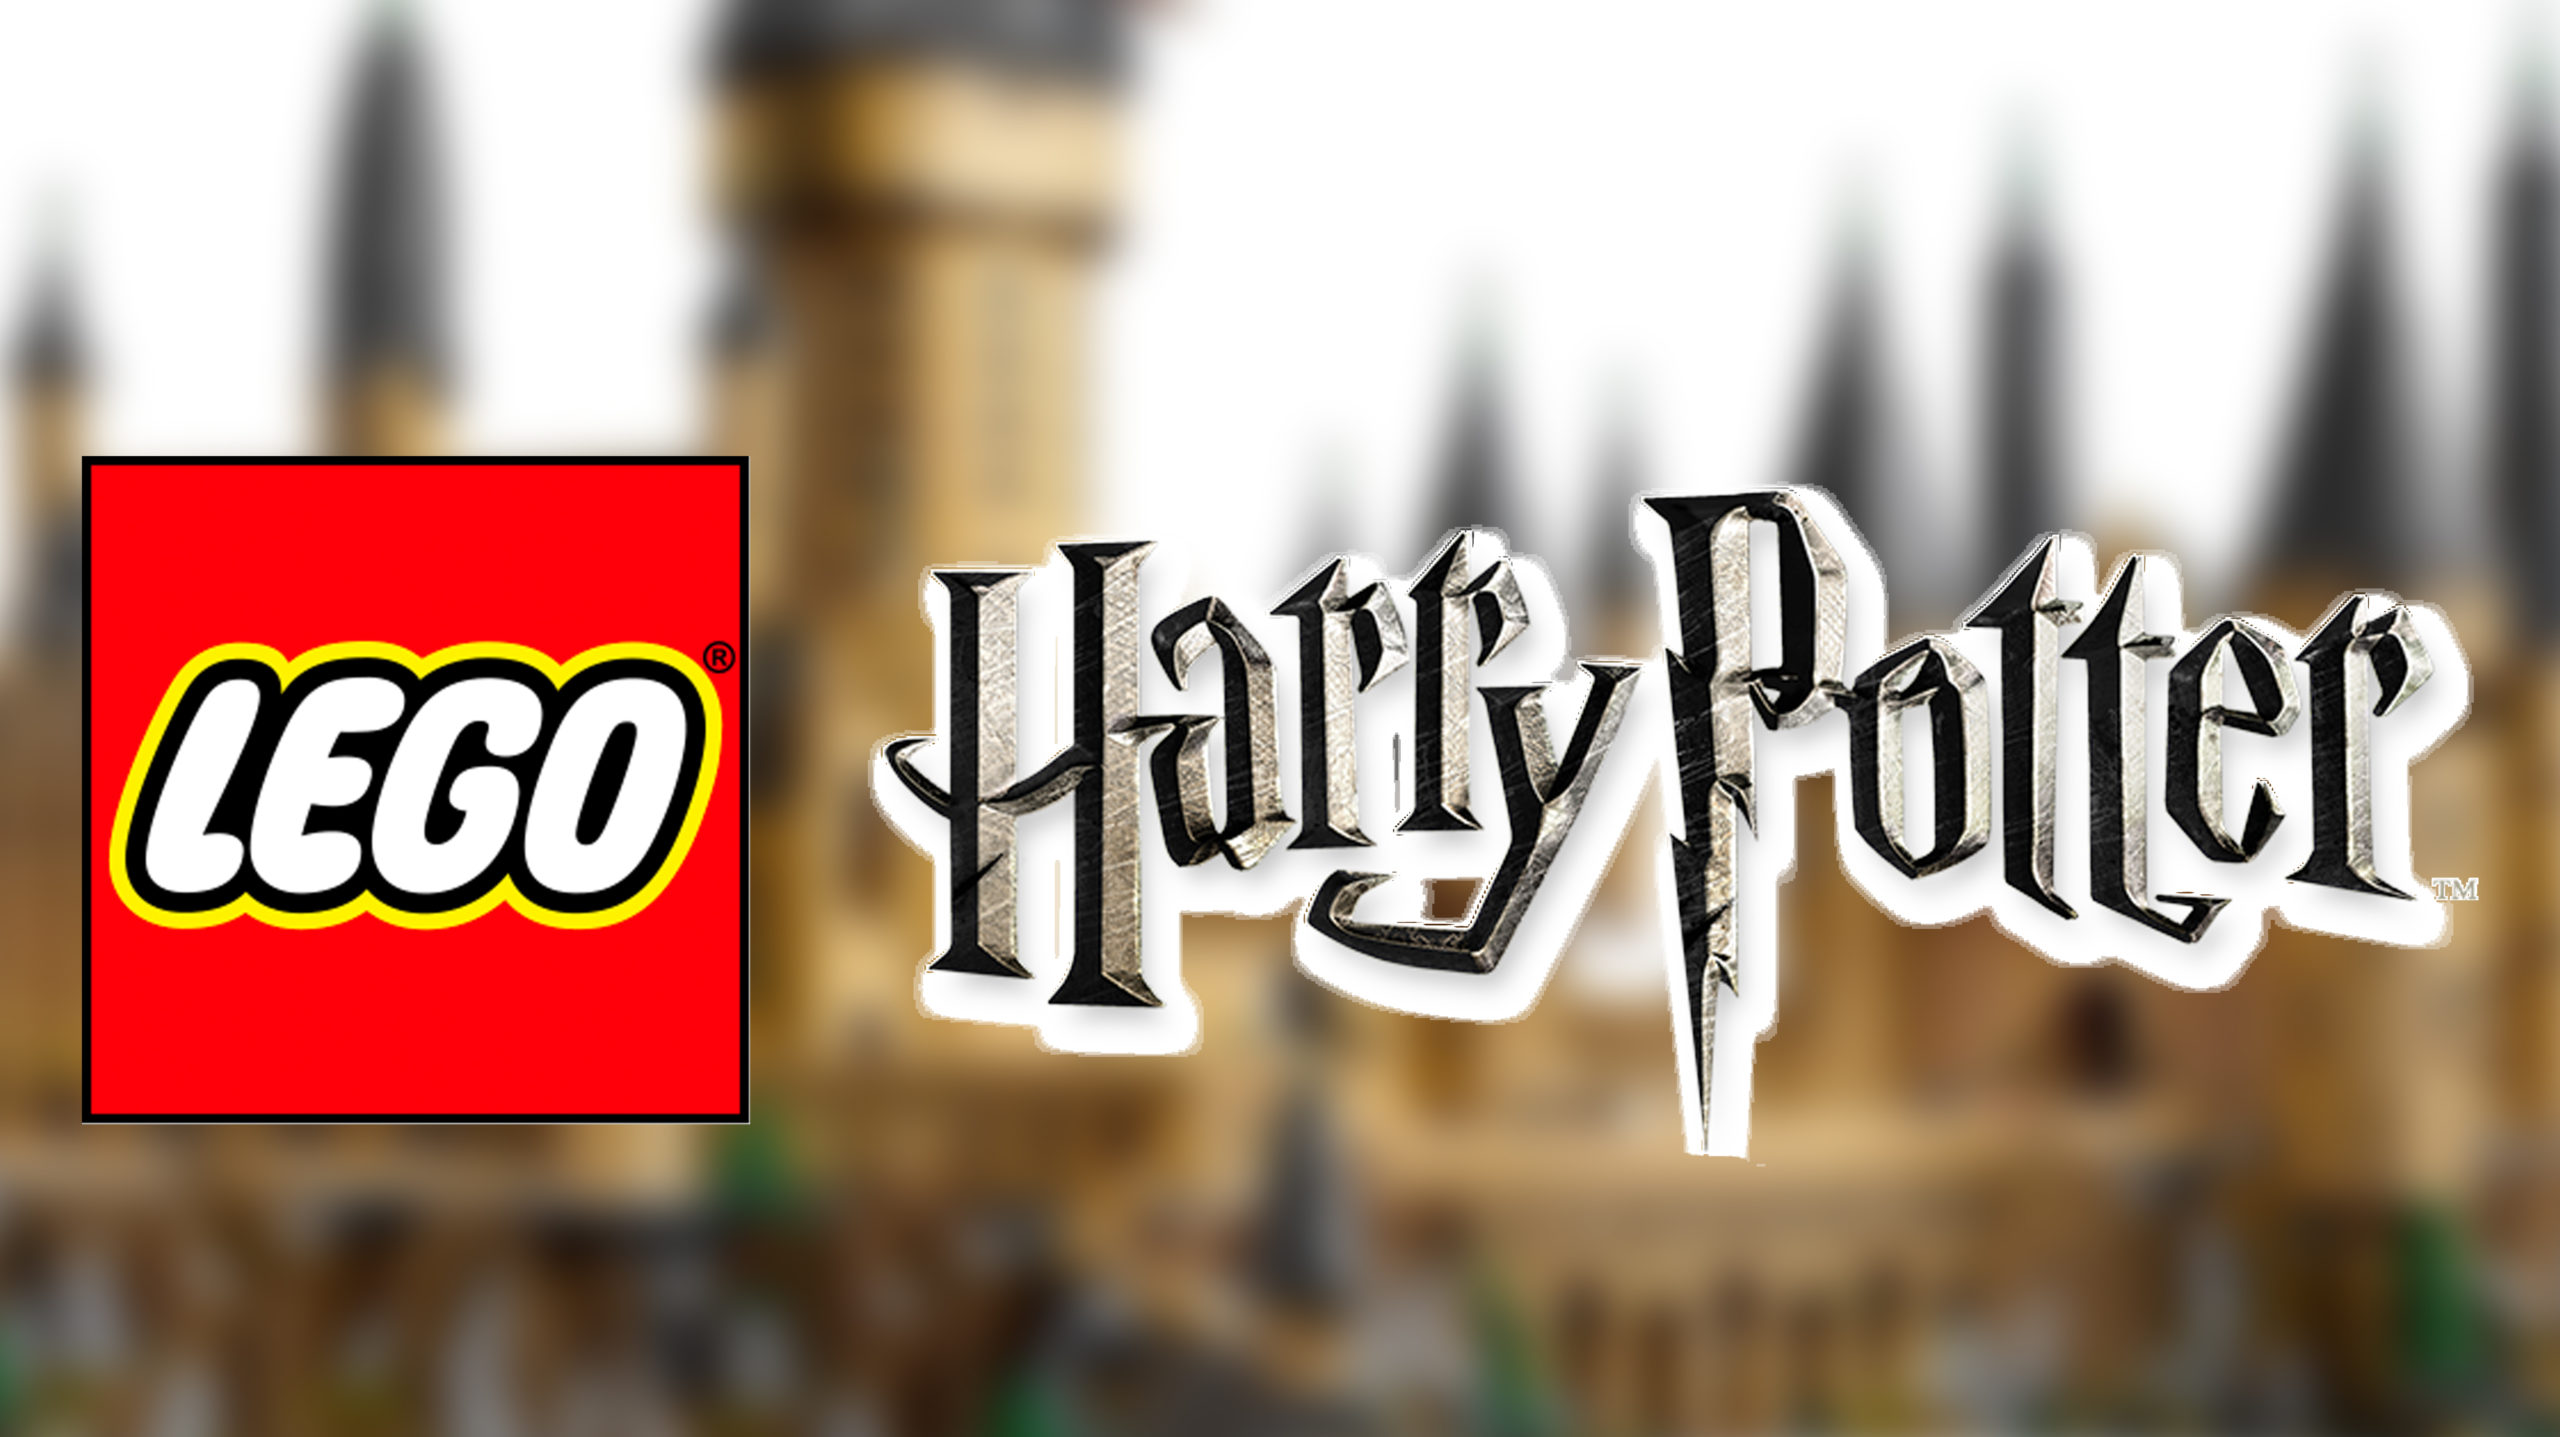 LEGO Harry Potter - Header Image